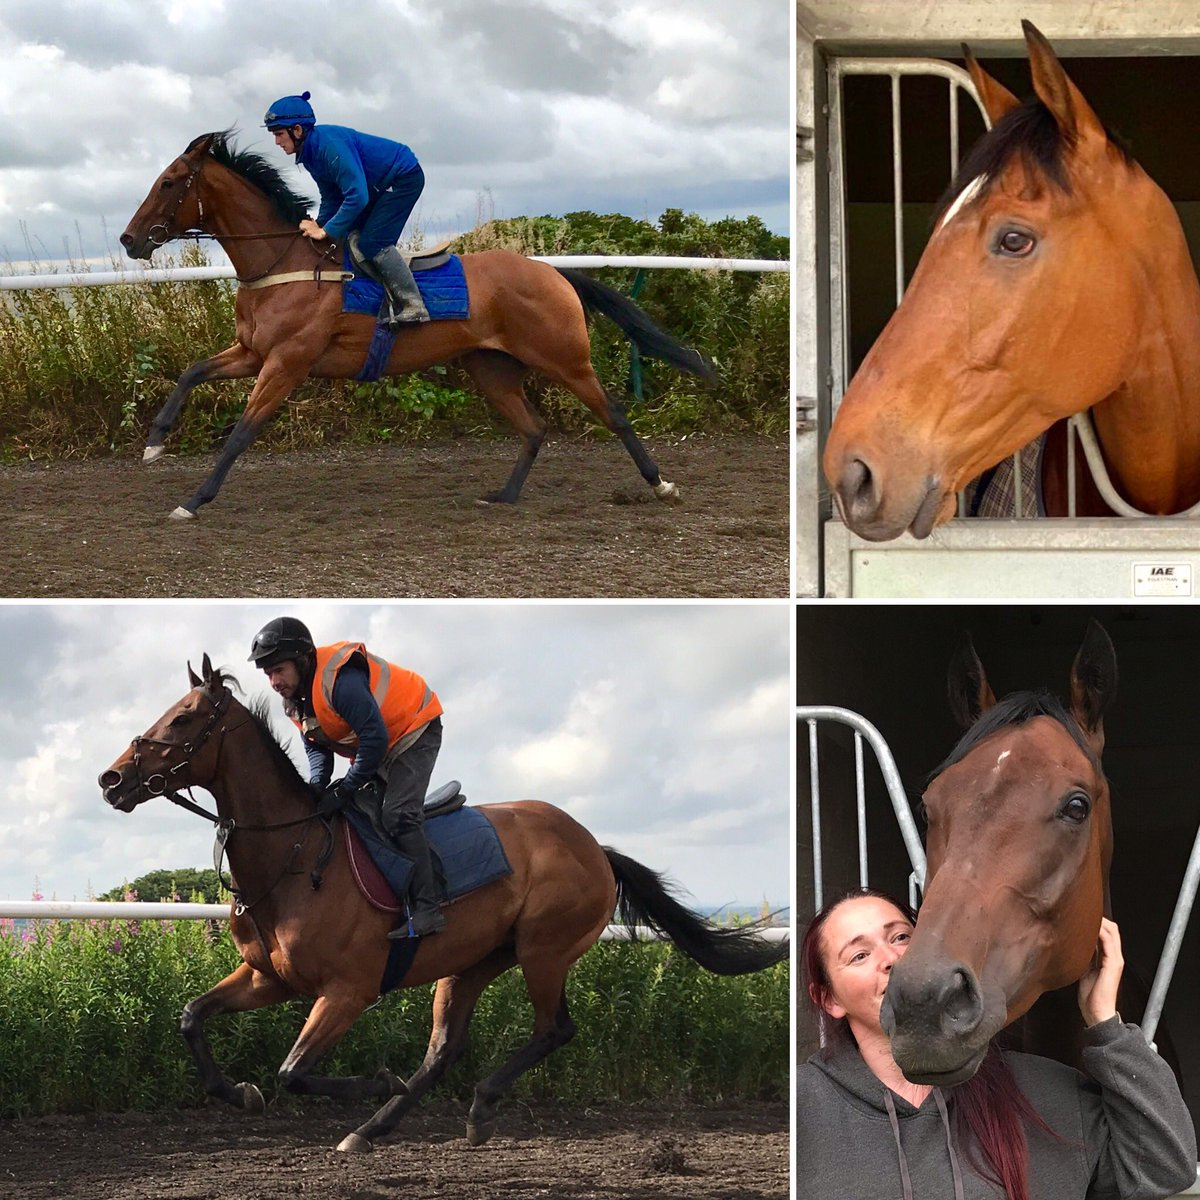 We're @ayrracecourse with our 2 superstars Nicholas T(top) & Euchen Glen, @StottKevin & @PMulrennan ride! #AyrGoldCupFestival